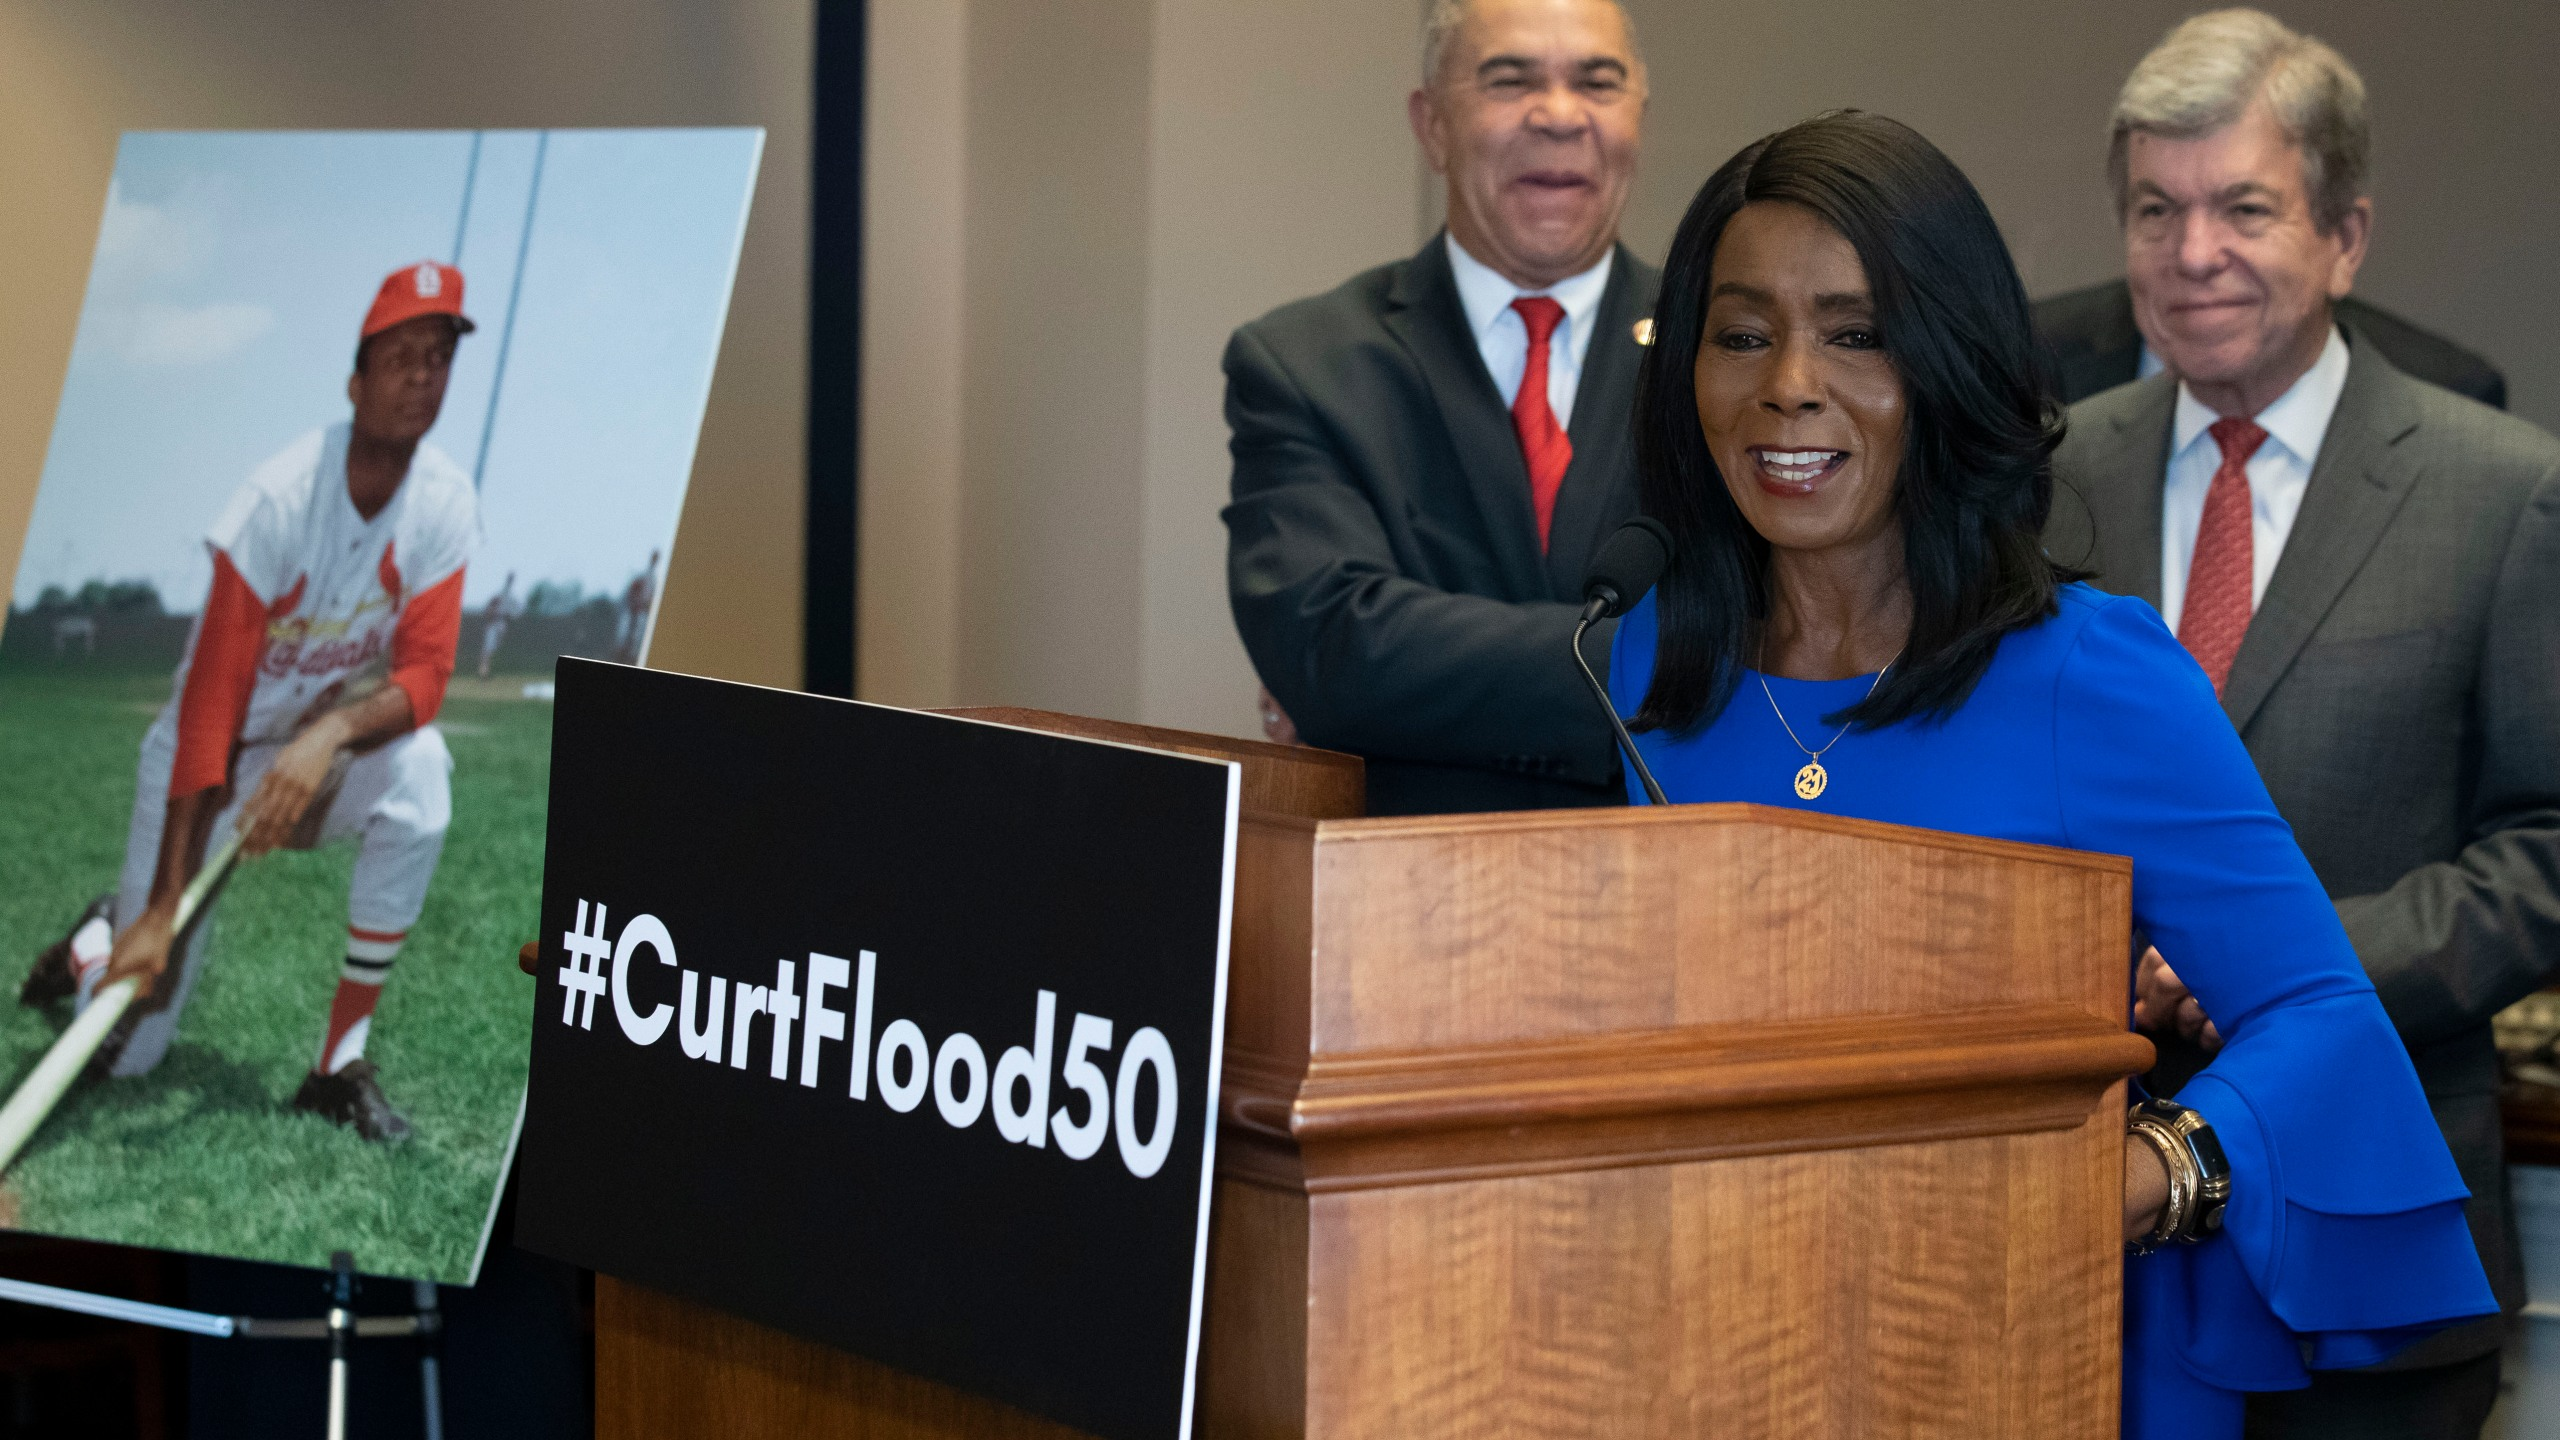 William Lacy Clay, Roy Blunt, Judy Pace Flood